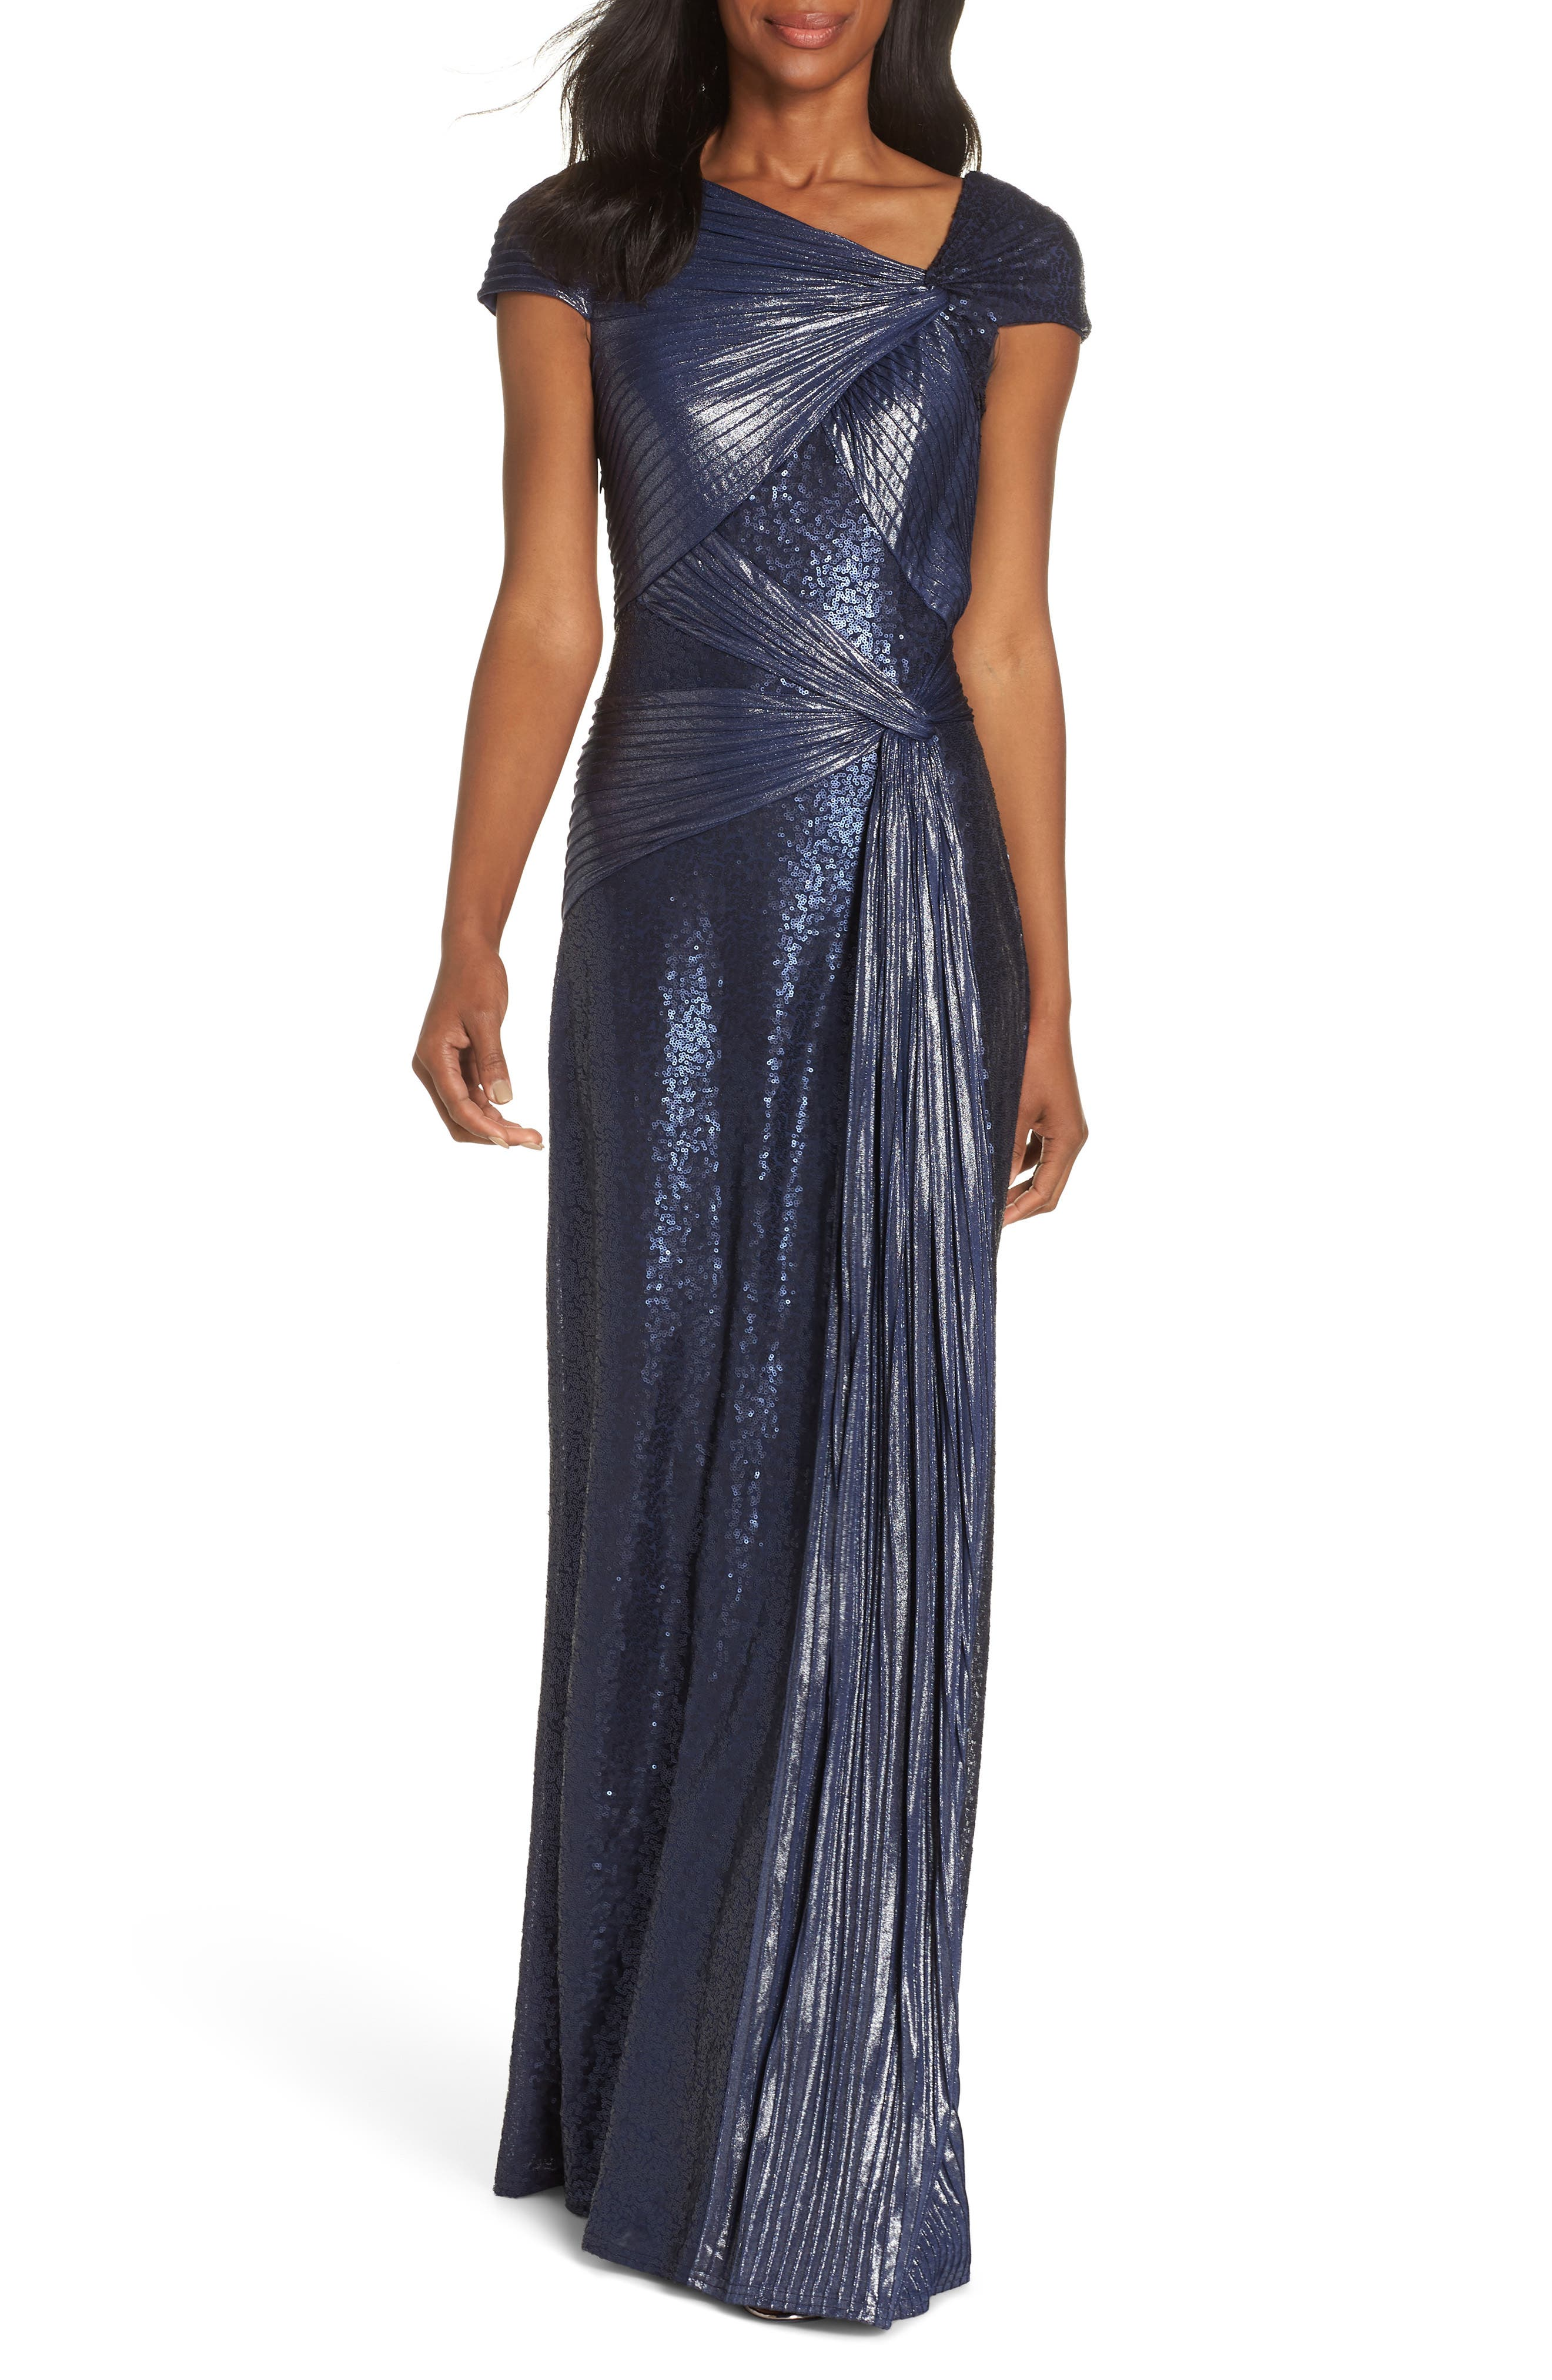 70s Prom, Formal, Evening, Party Dresses Womens Tadashi Shoji Pintuck Sequin Gown $548.00 AT vintagedancer.com